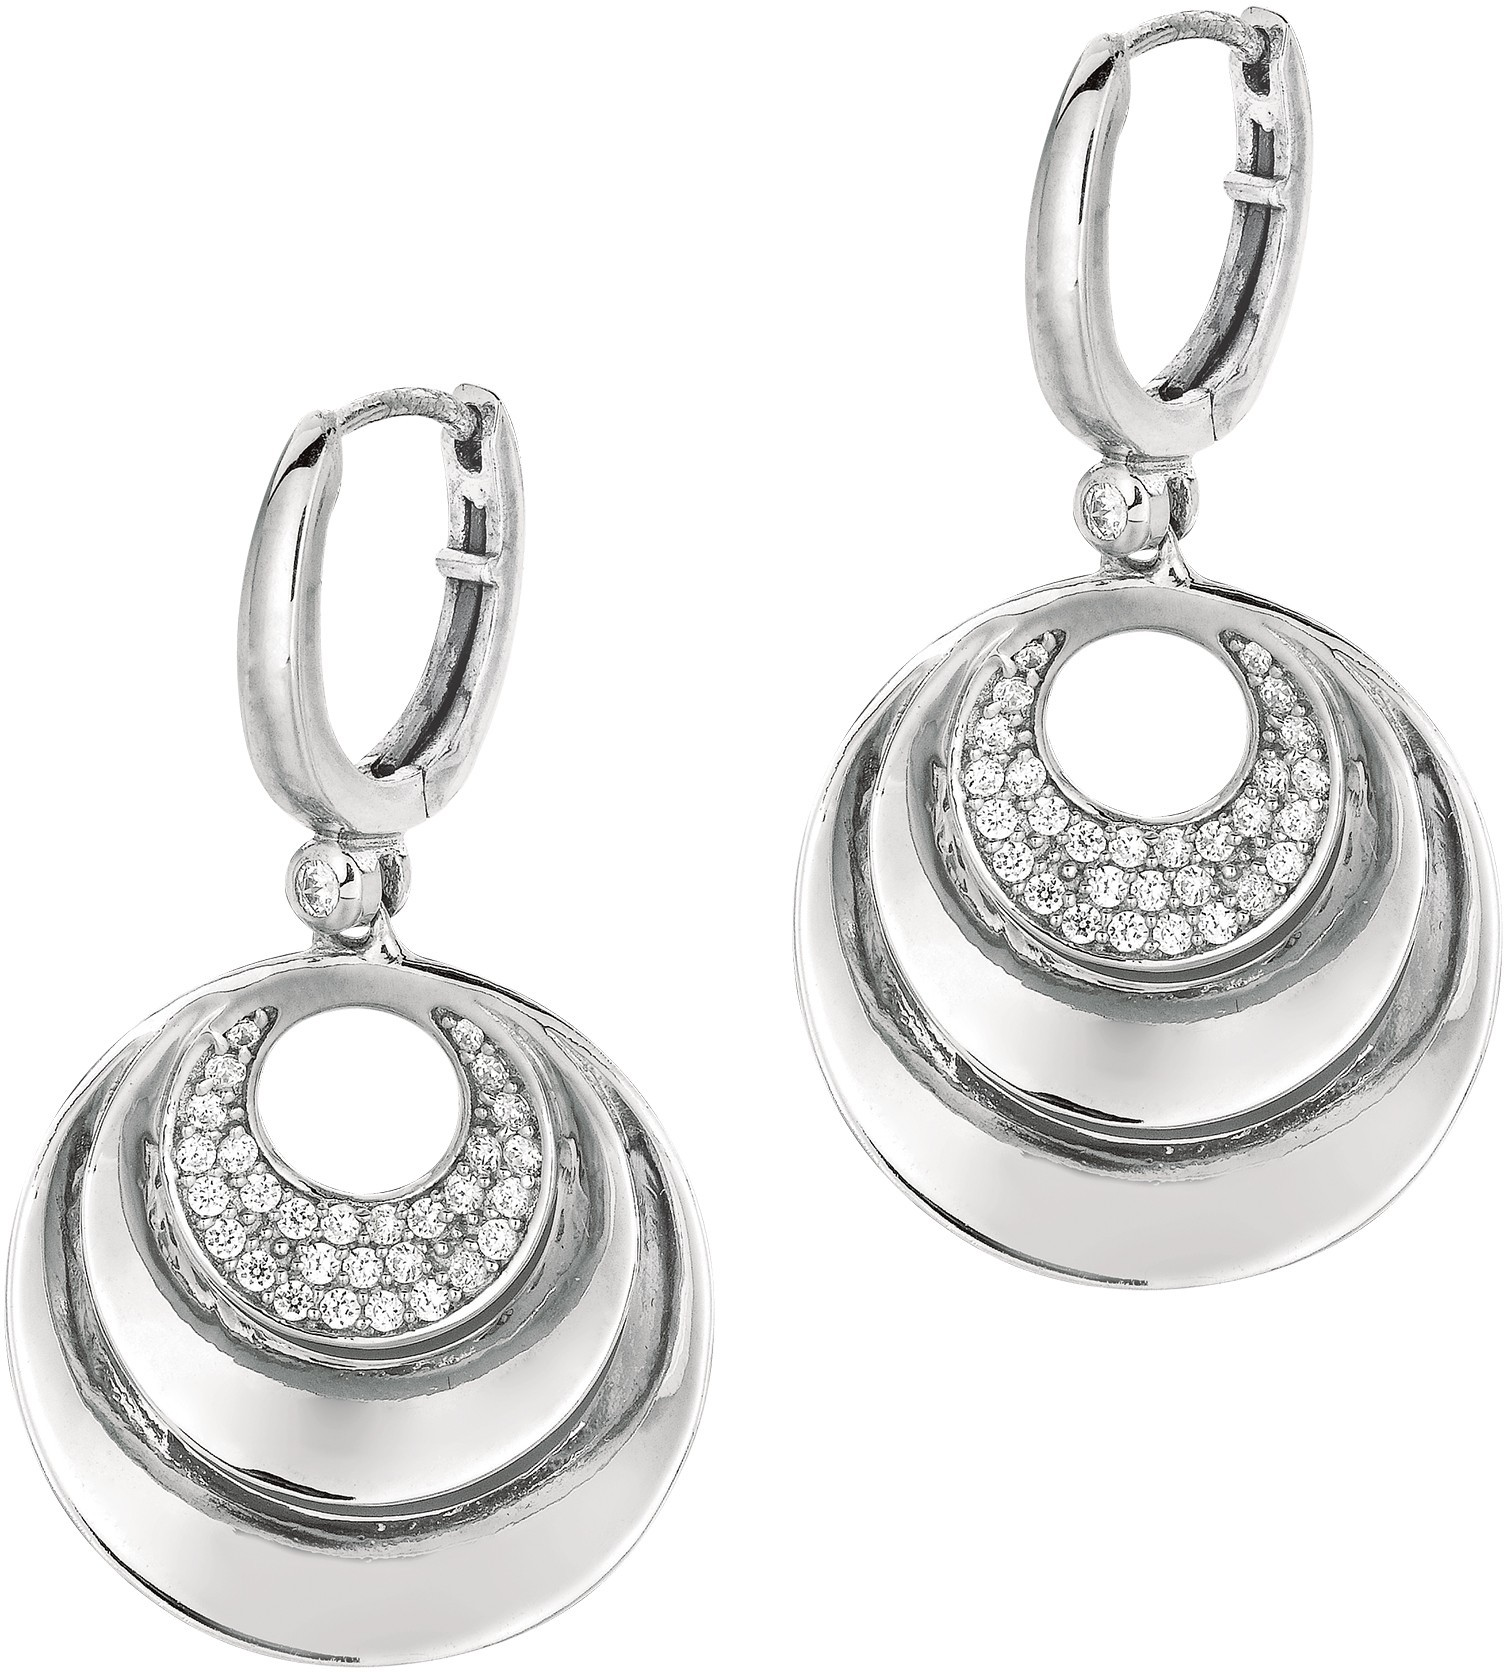 Silver Rhodium Plated Shiny 3 Graduated Open Circle Earrings w/ Clear CZ